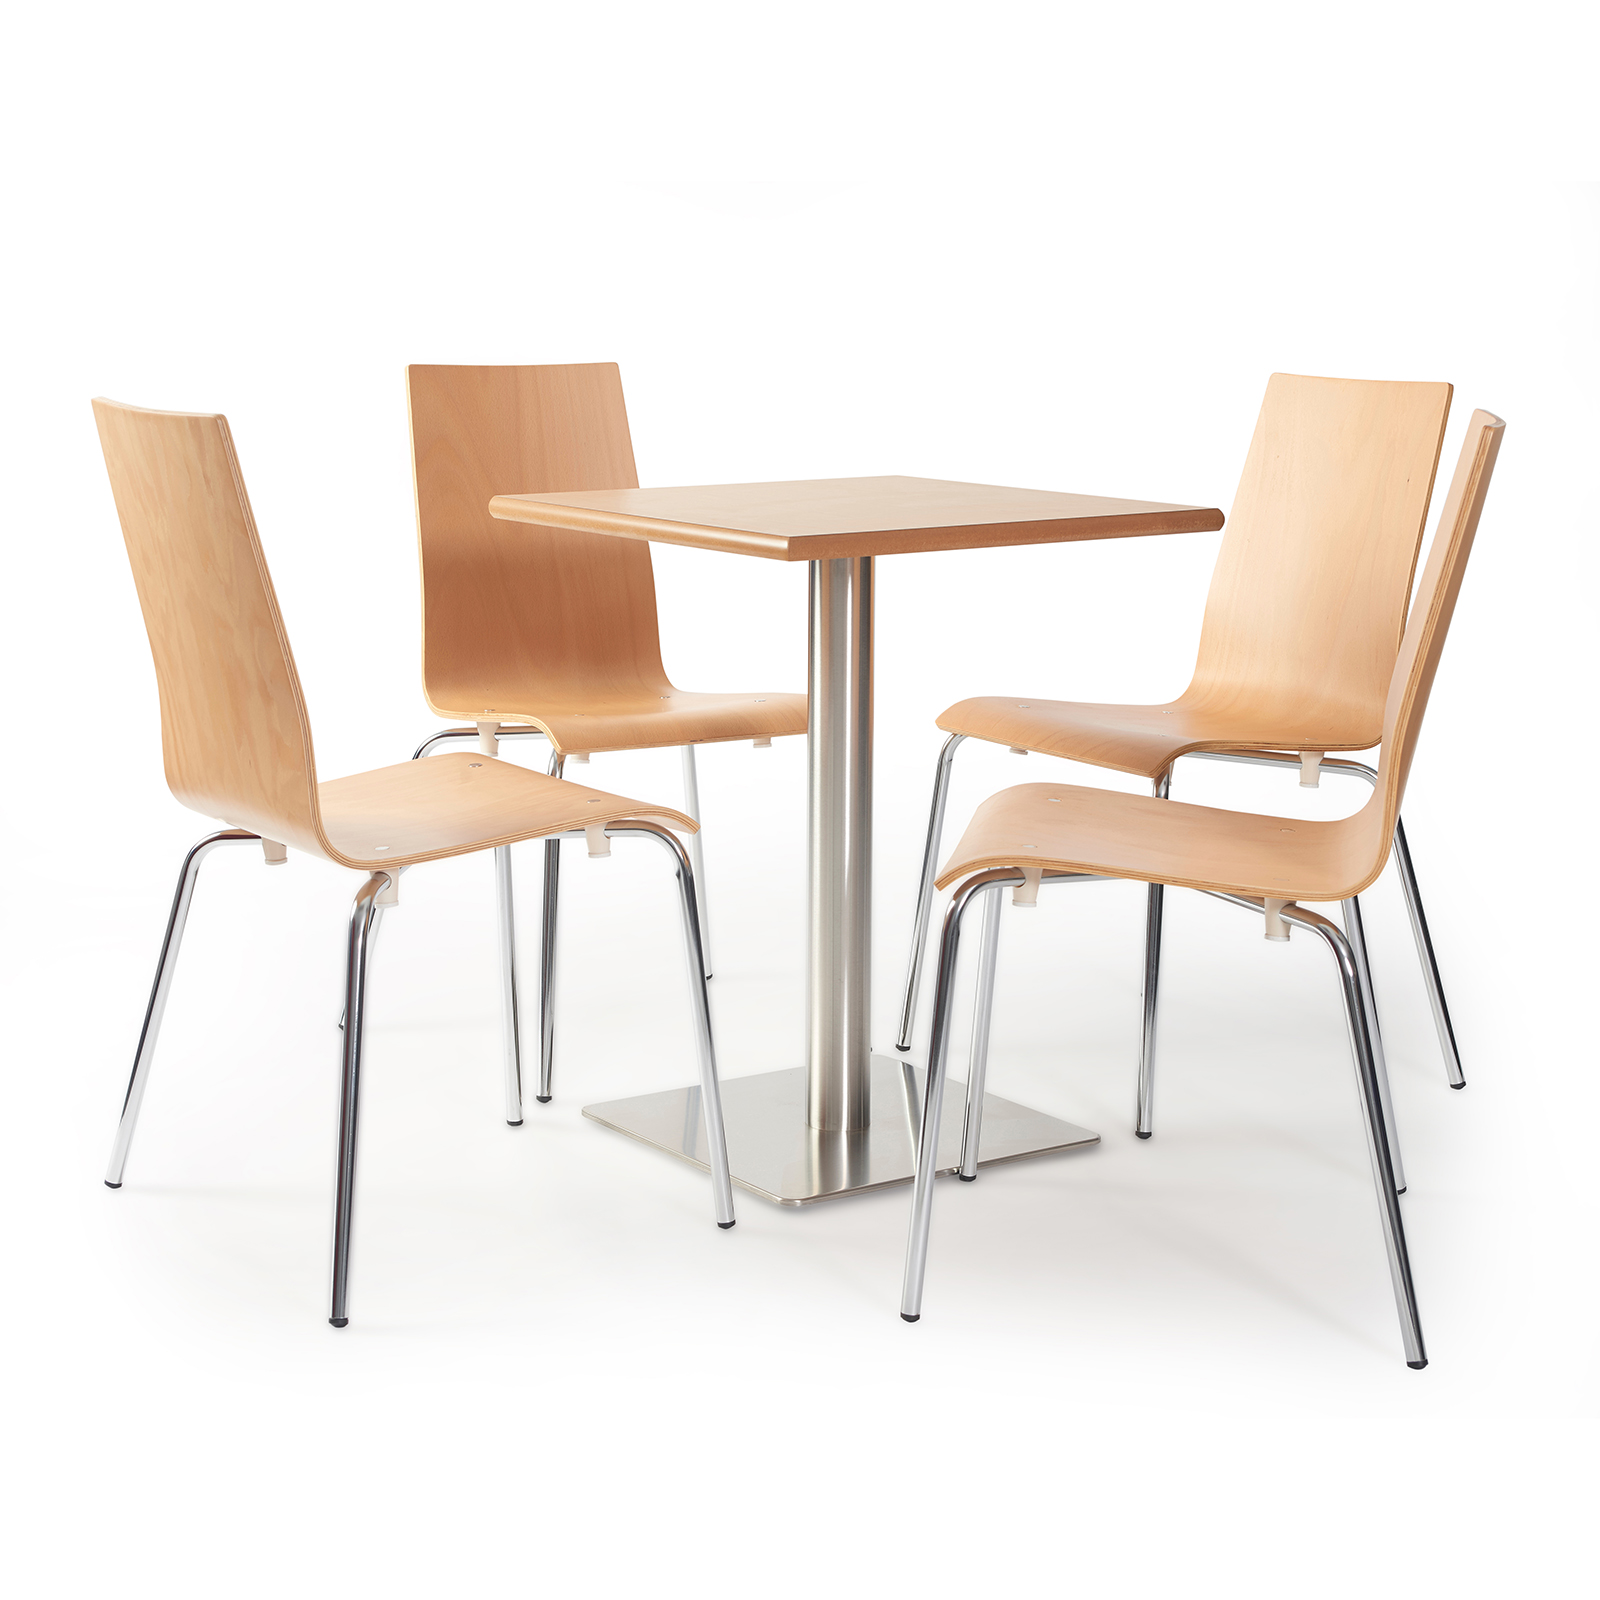 Fundamental dining chair in beech with chrome frame